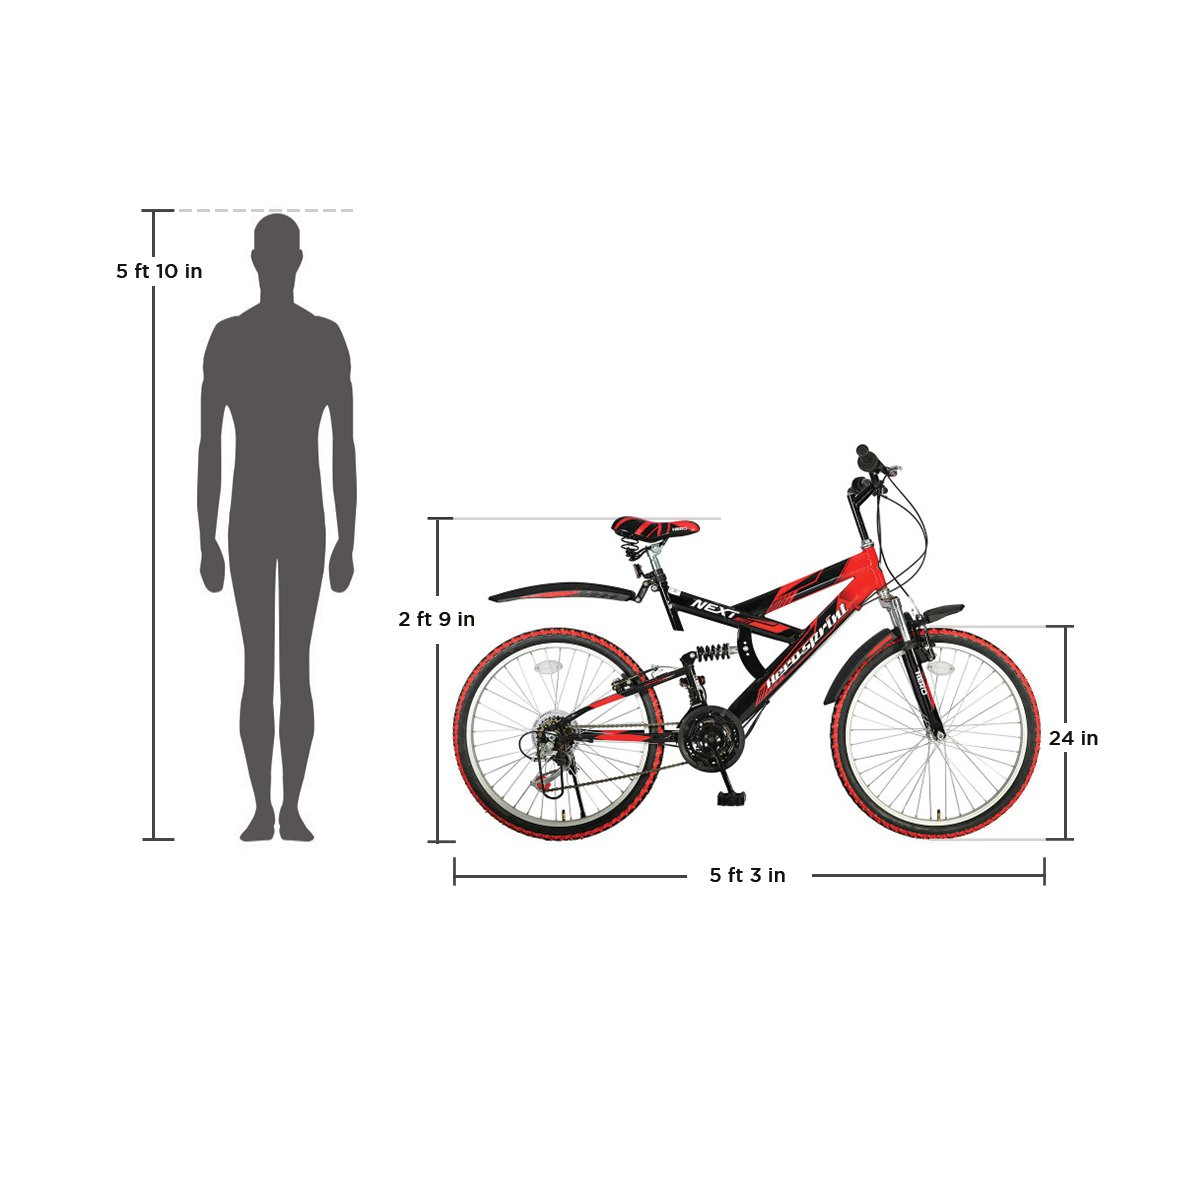 5c68e02098f Buy Hero Next 24T 18 Speed Mountain Cycle (Red/Black) Online at Low Prices  in India - Amazon.in